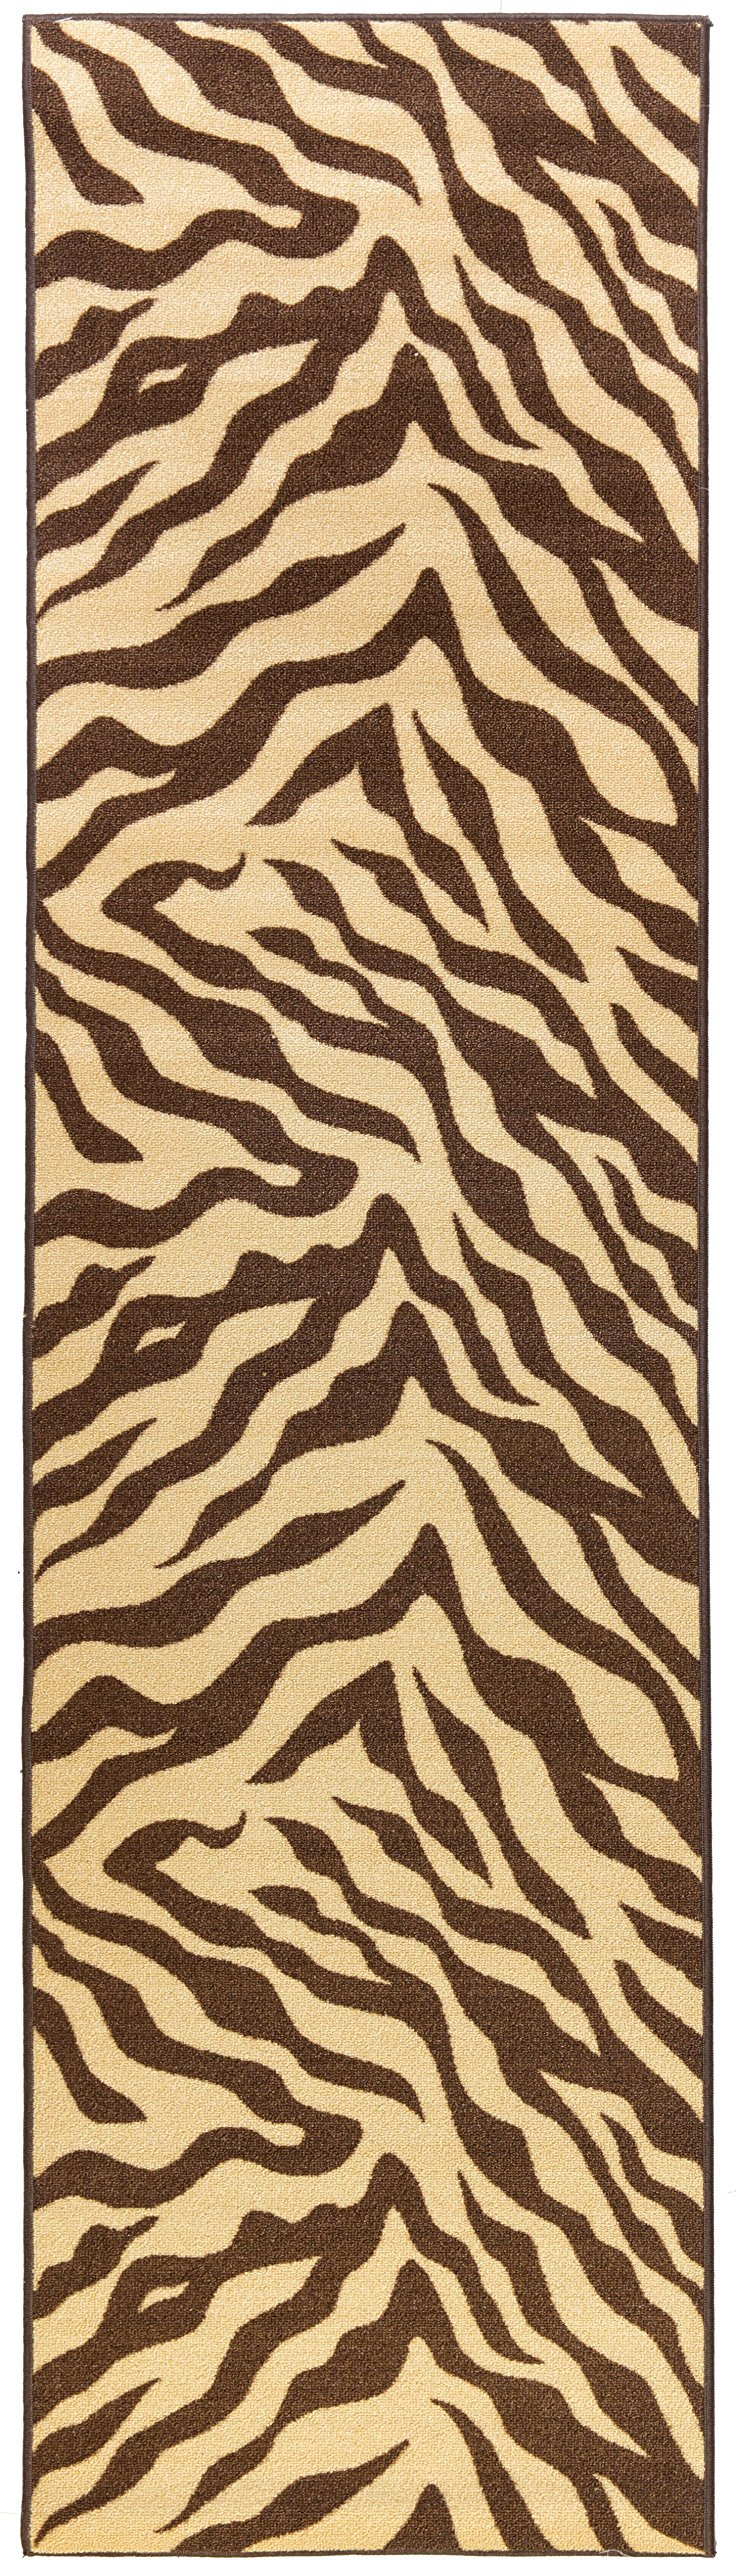 Well Woven Zebra Brown Animal Print Non Skid 2' X 6'10'' Runner (2501)